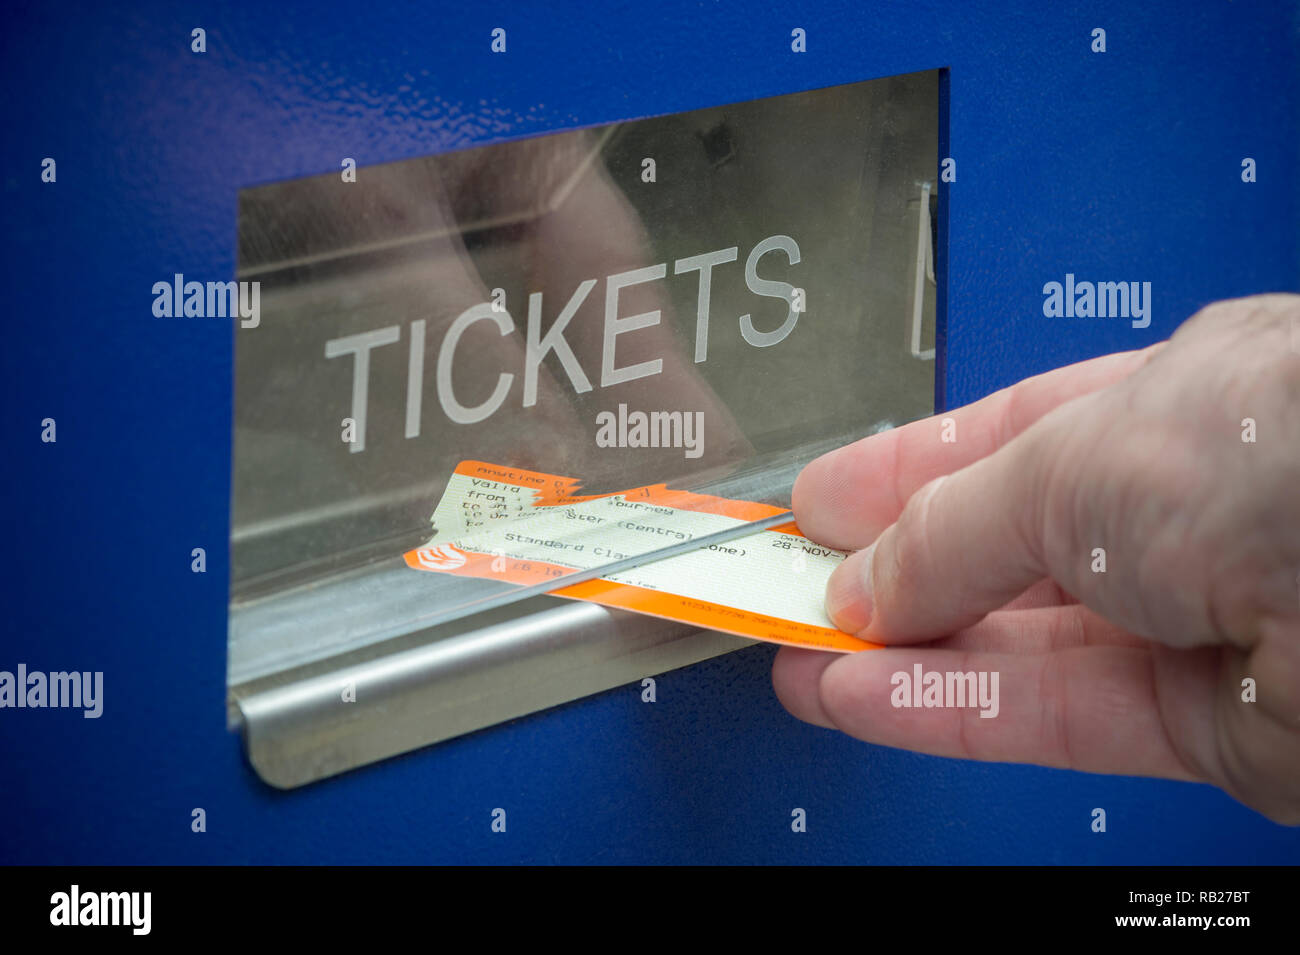 A man collects a train ticket from a ticket vending machine located at a UK train station. - Stock Image